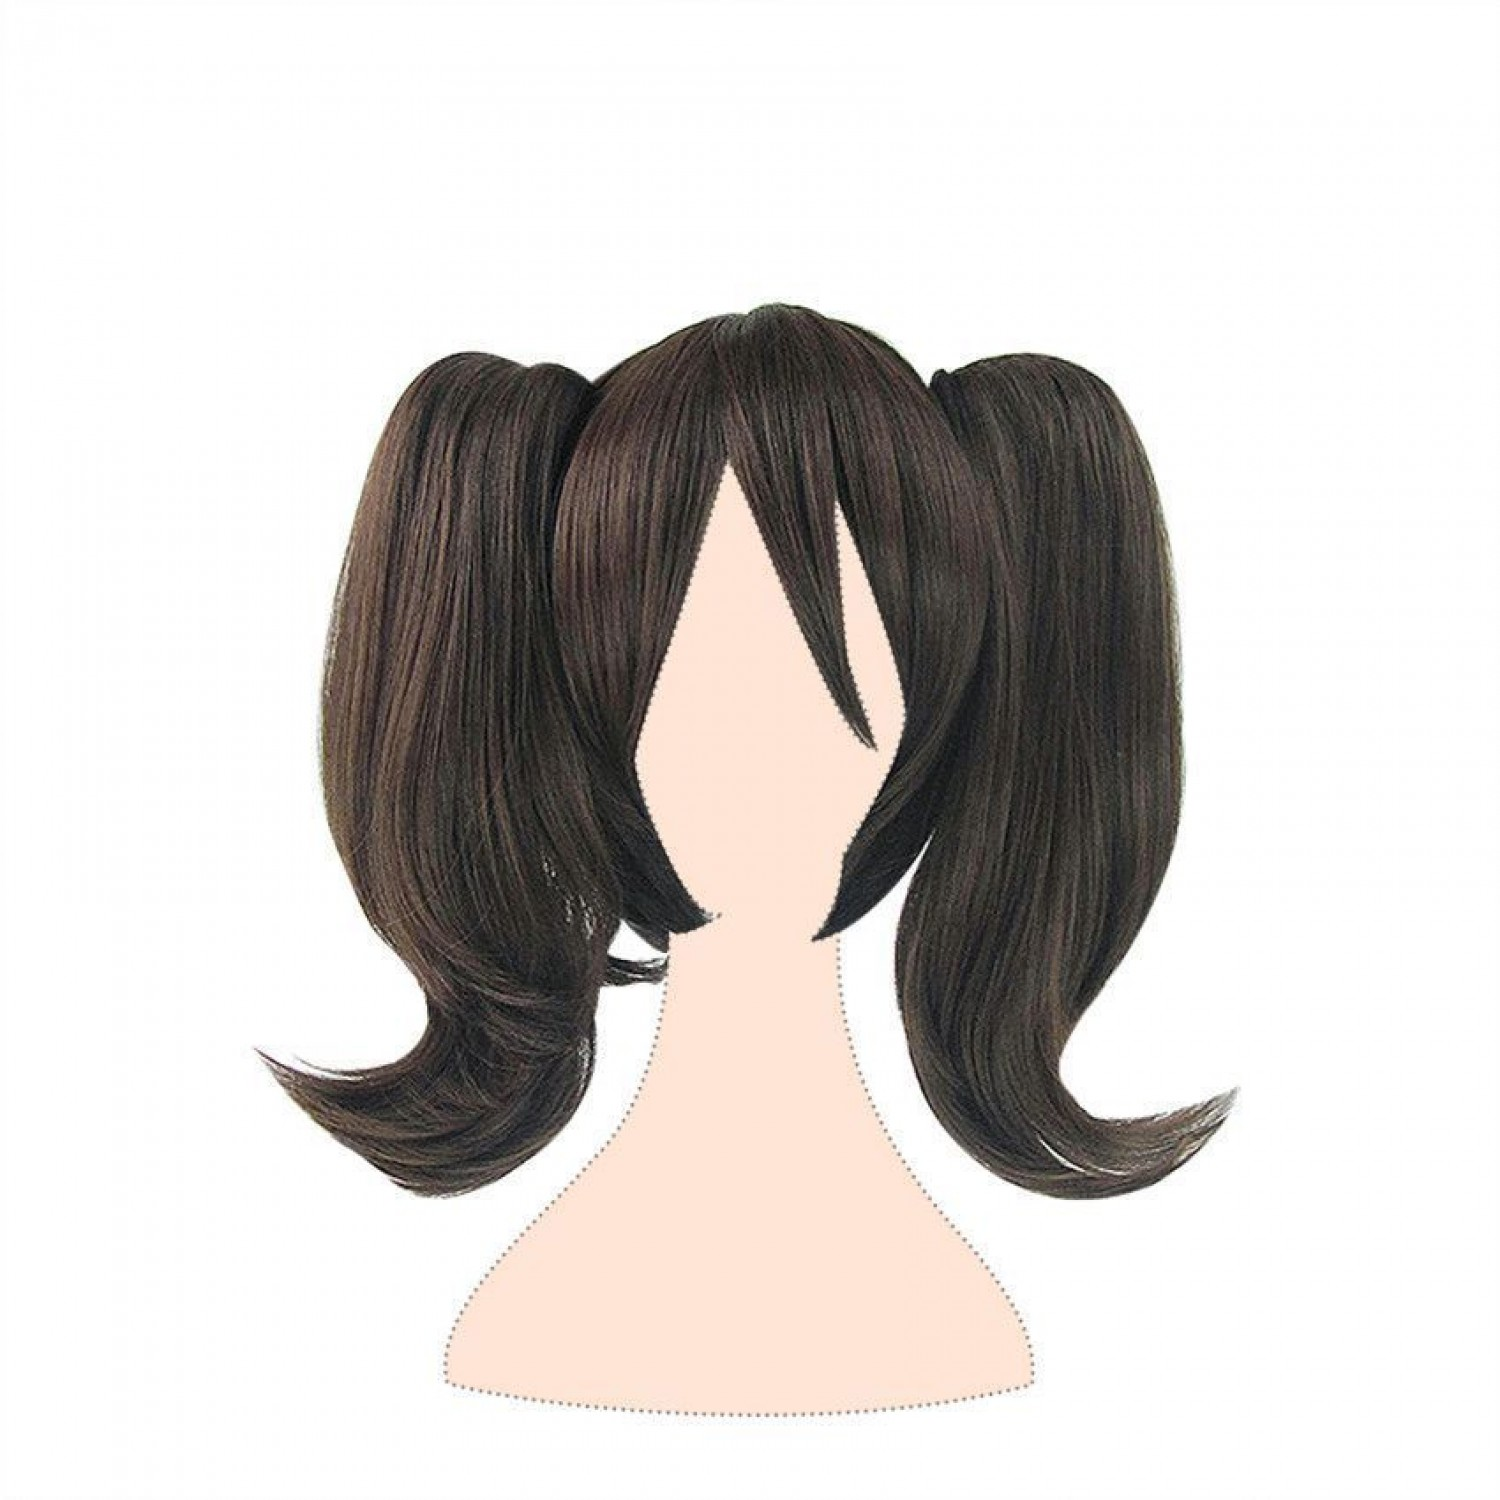 The Seven deadly sins Serpent's Sin Of Envy Diane Cosplay Wig